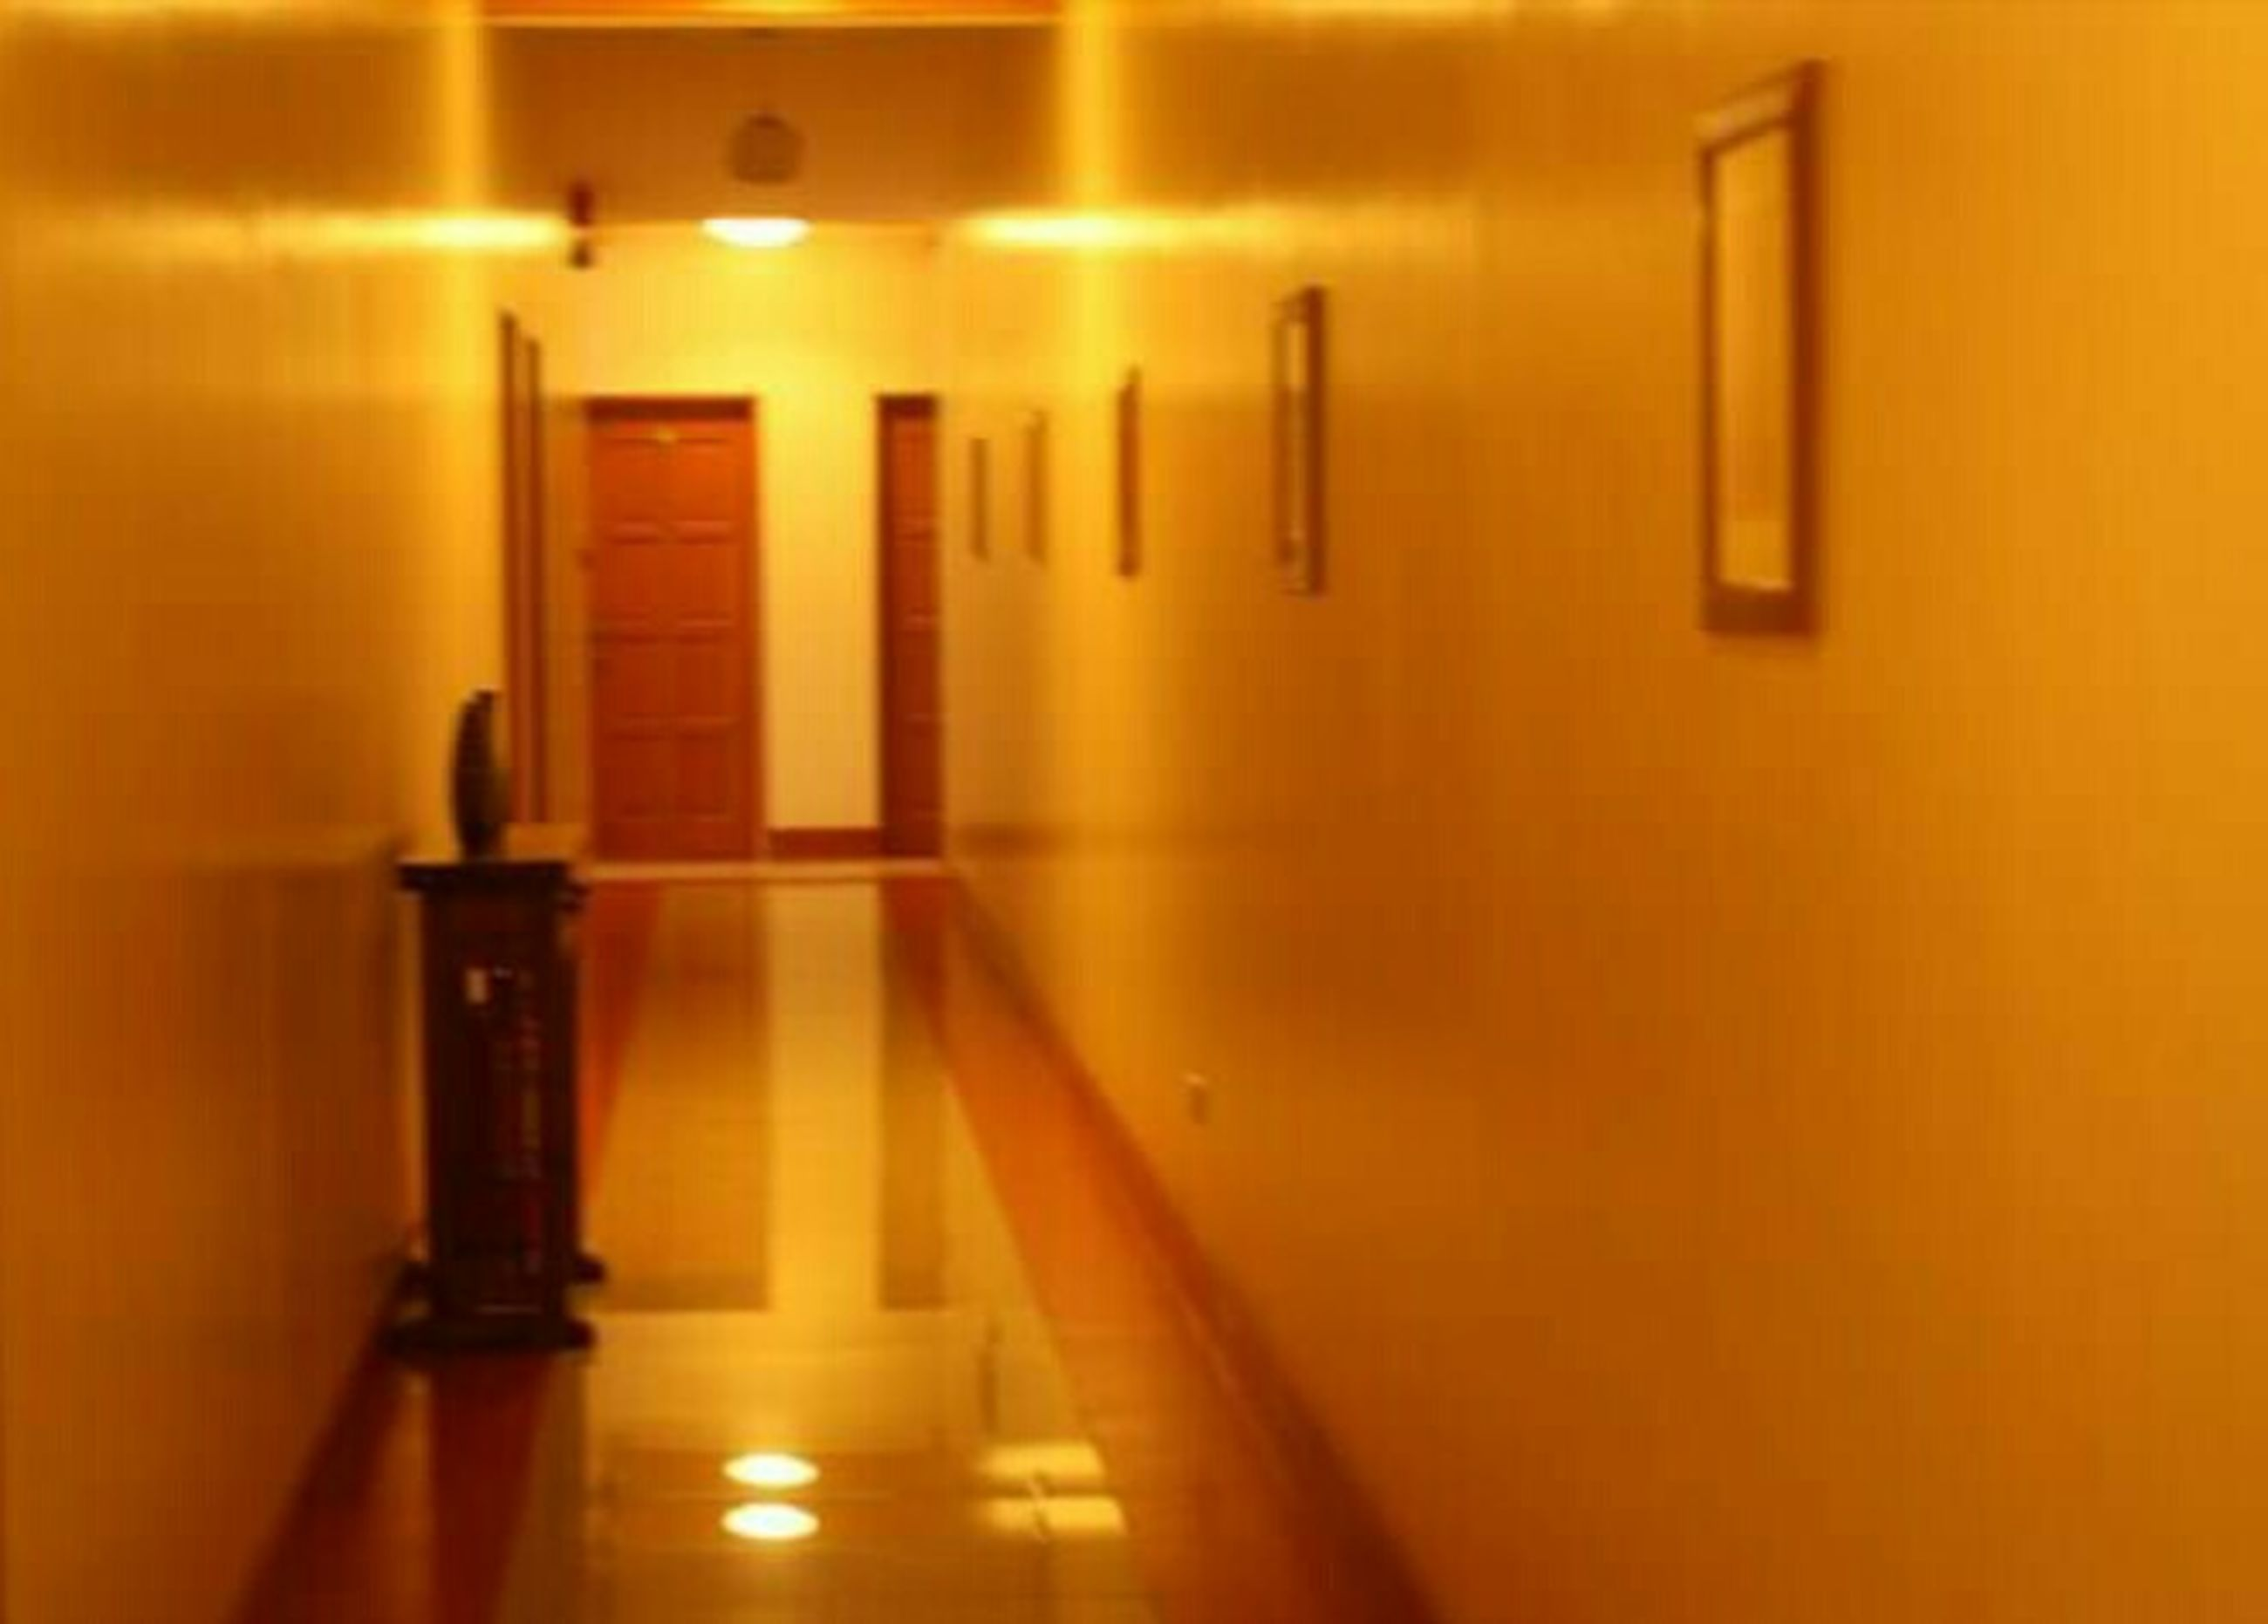 indoors, illuminated, wall - building feature, lighting equipment, built structure, in a row, light - natural phenomenon, architecture, no people, wall, flooring, yellow, wood - material, selective focus, shadow, empty, close-up, reflection, absence, home interior